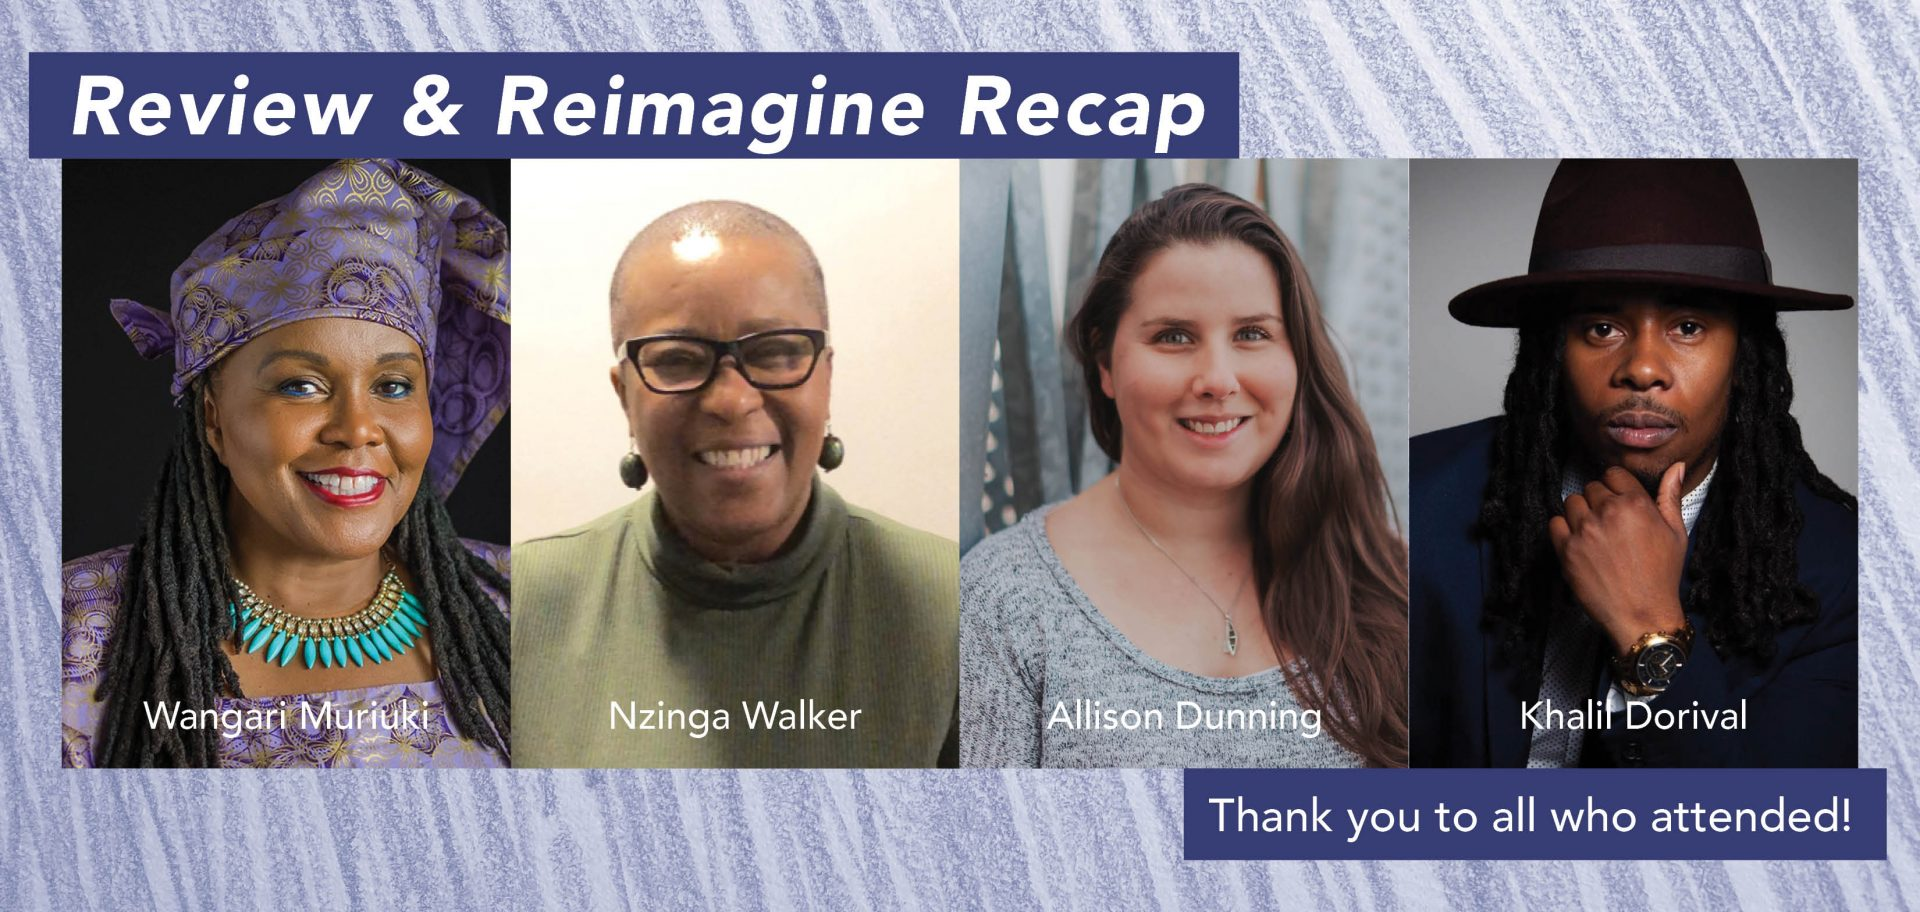 """A graphic featuring photos of: Wangari Muriuki, Nzinga Walker, Allison Dunning and Khalil Dorival. In the top right corner is a heading that reads """"Review & Reimagine Recap"""" and in the bottom right a subheading """"Thank you to all who attended!"""" The background is a texture of a purple pencil crayon drawing."""